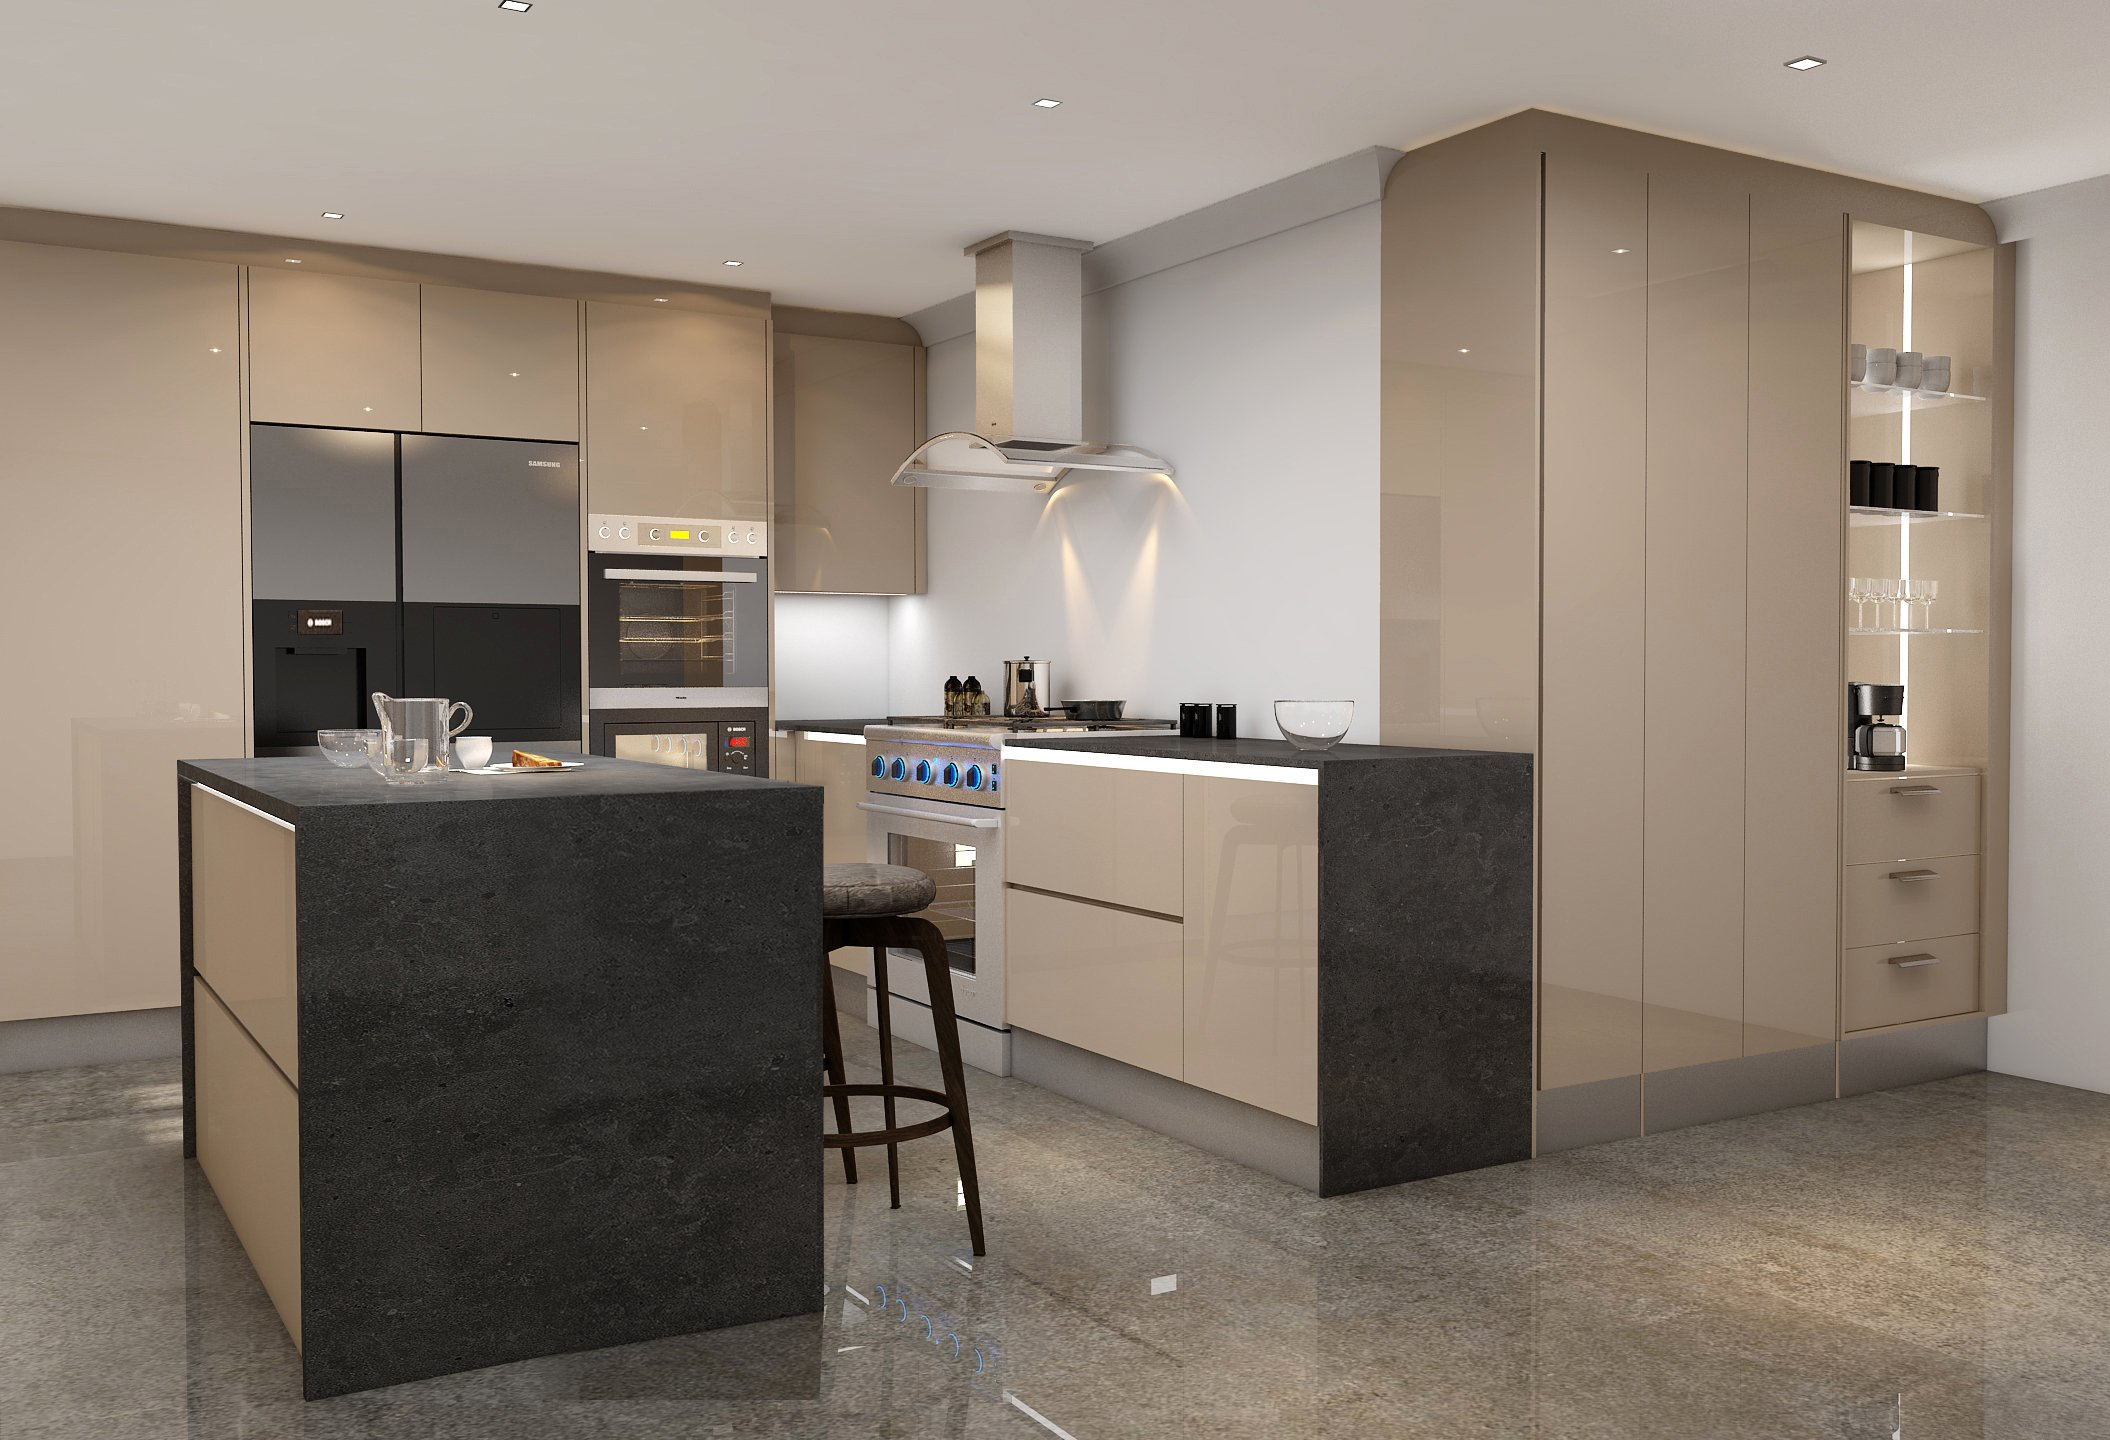 Handlless Kitchen in cashmere gloss finish with LED lights (2)